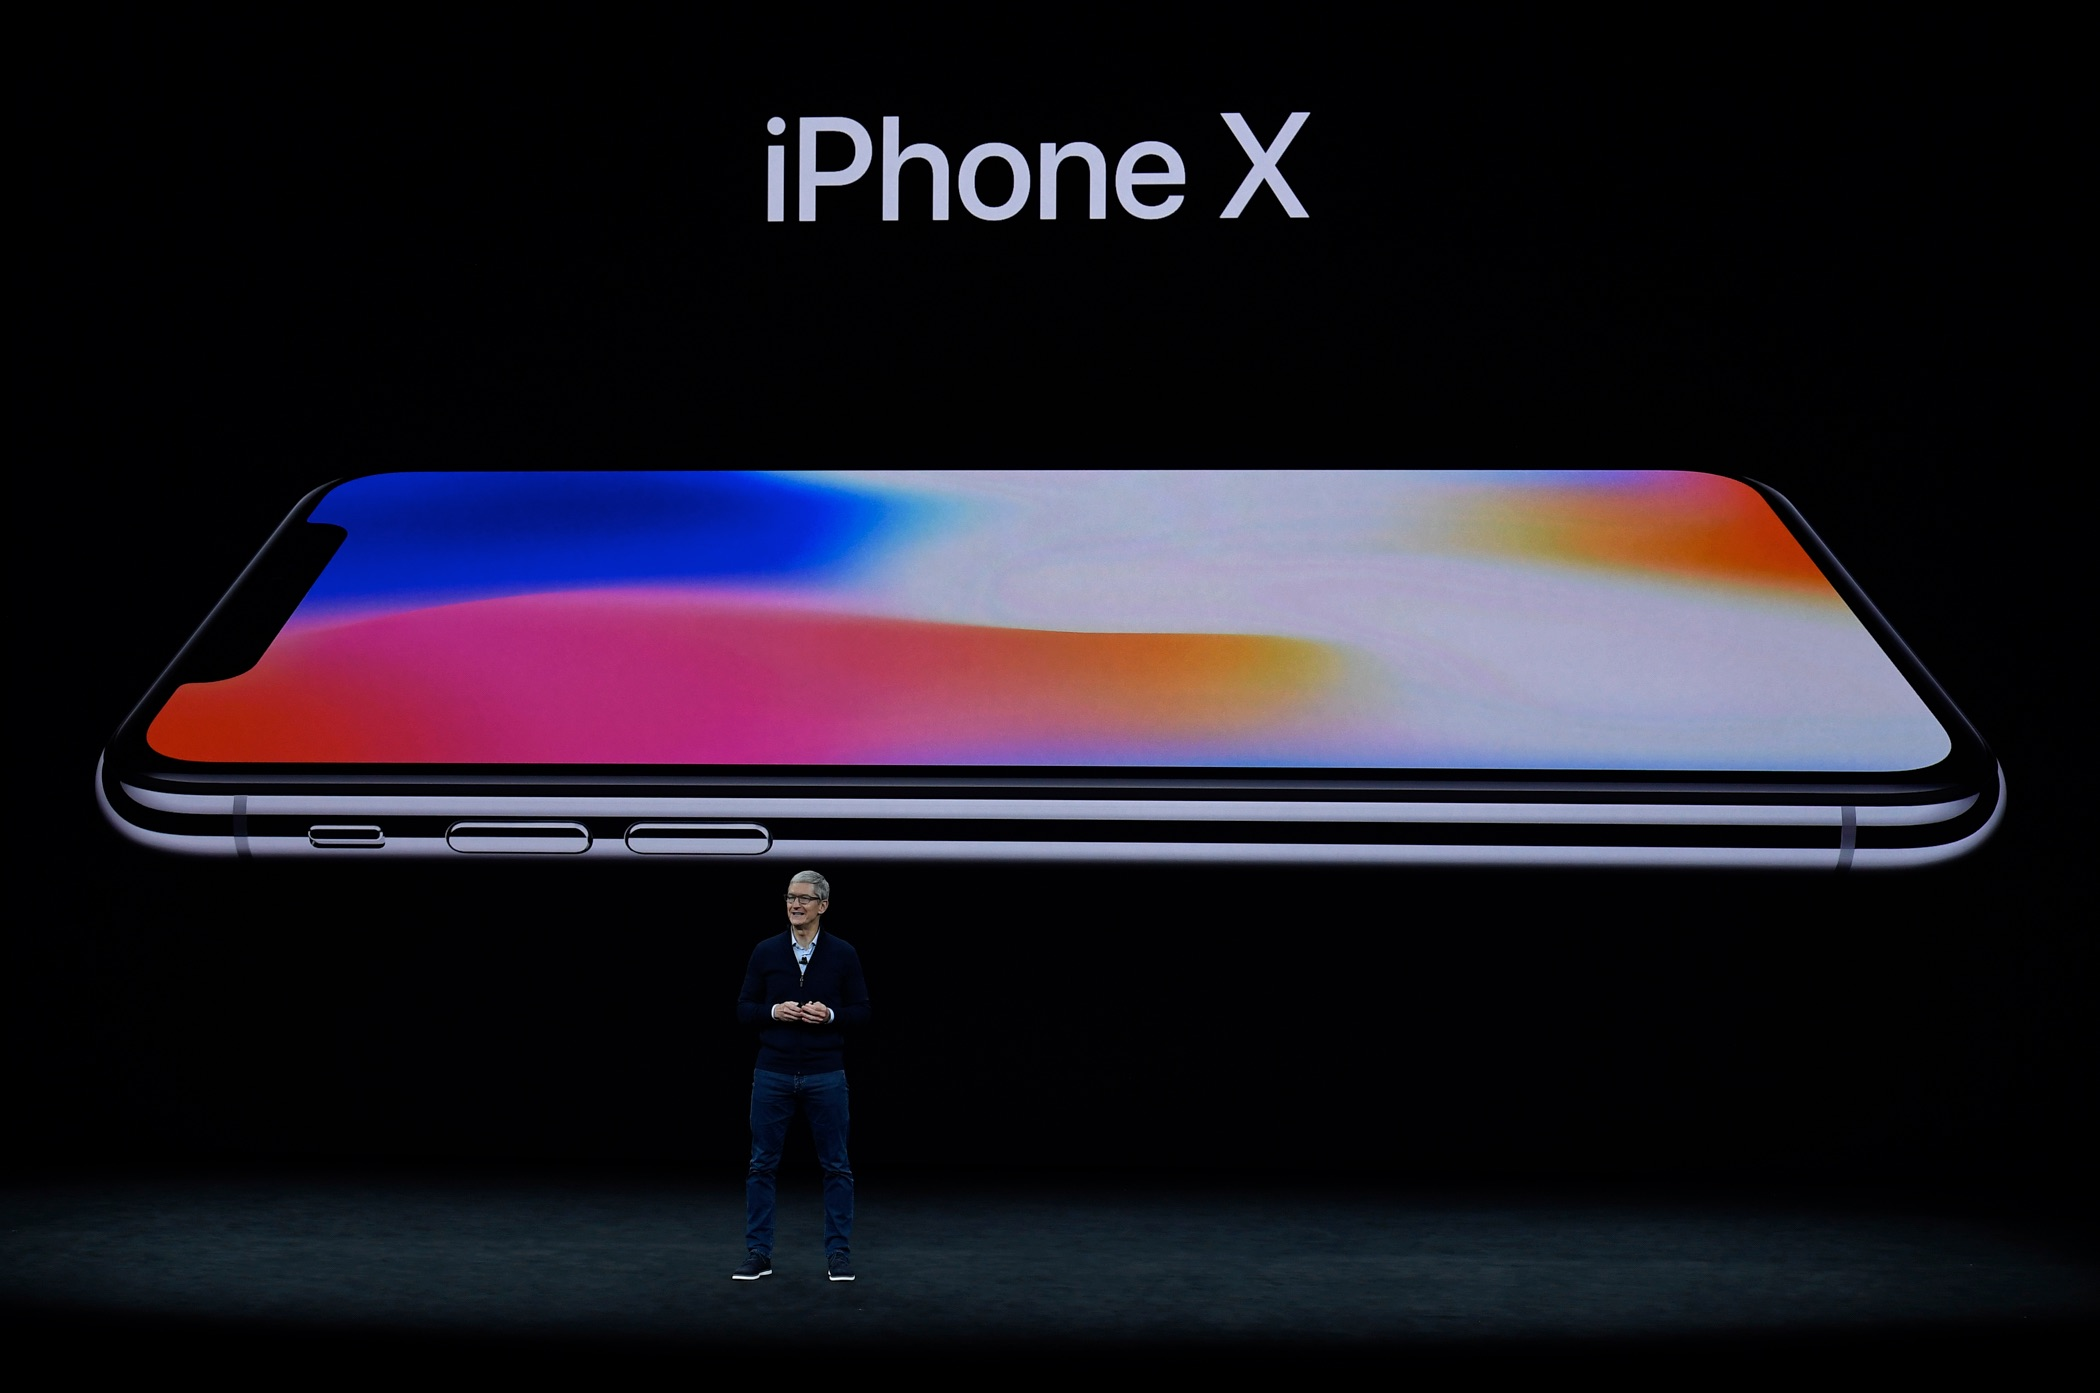 Apple CEO Tim Cook introduces iPhone X during the Apple launch event on September 12, 2017 in Cupertino, California. Apple Inc. unveiled its new iPhone 8, iPhone X, iPhone 8 Plus, and the Apple Watch Series 3 at the new Apple Park campus.